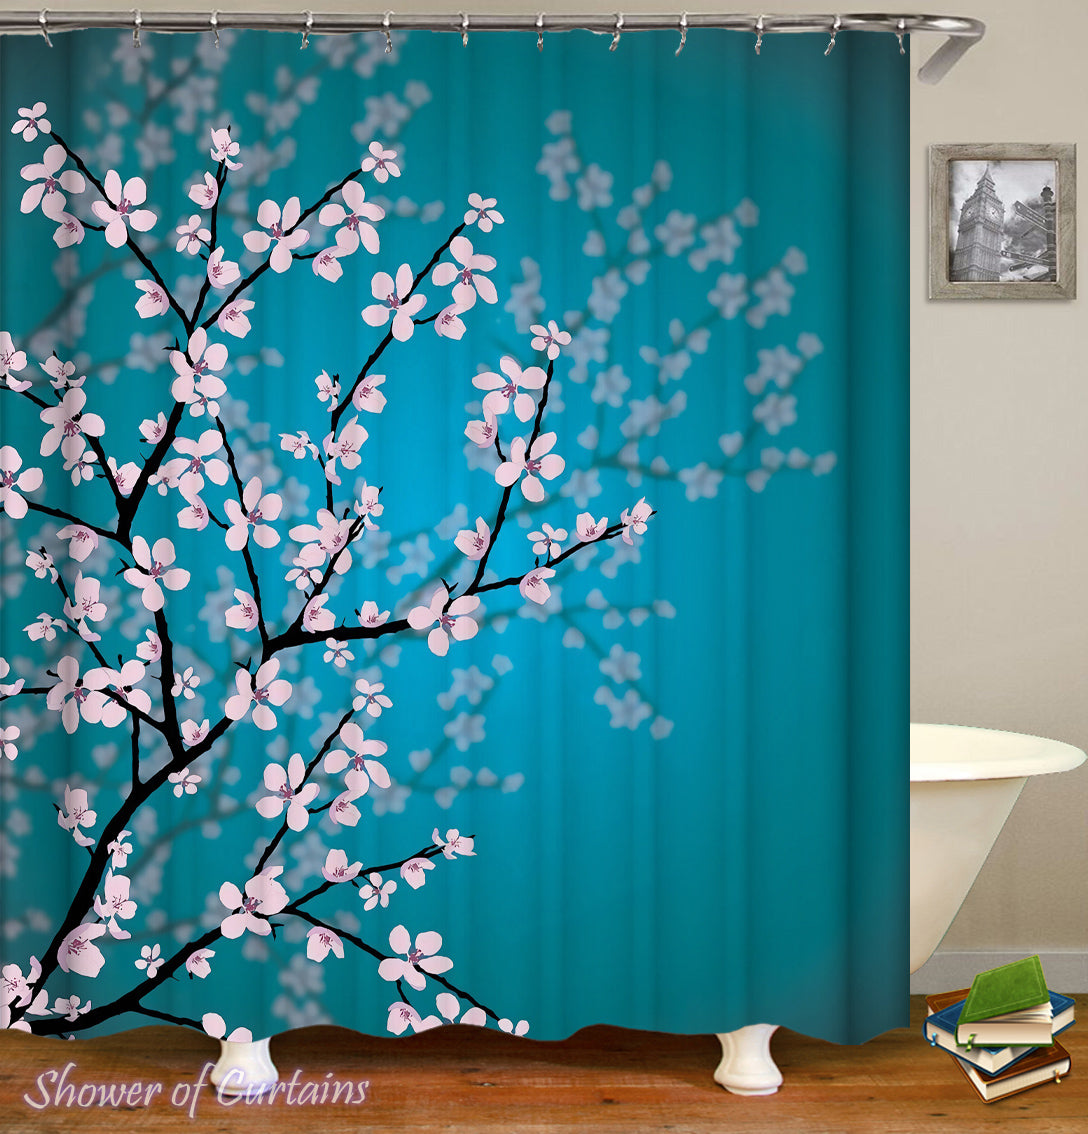 Shower Curtains | Cherry Blossom Over The Turquoise – Shower of Curtains